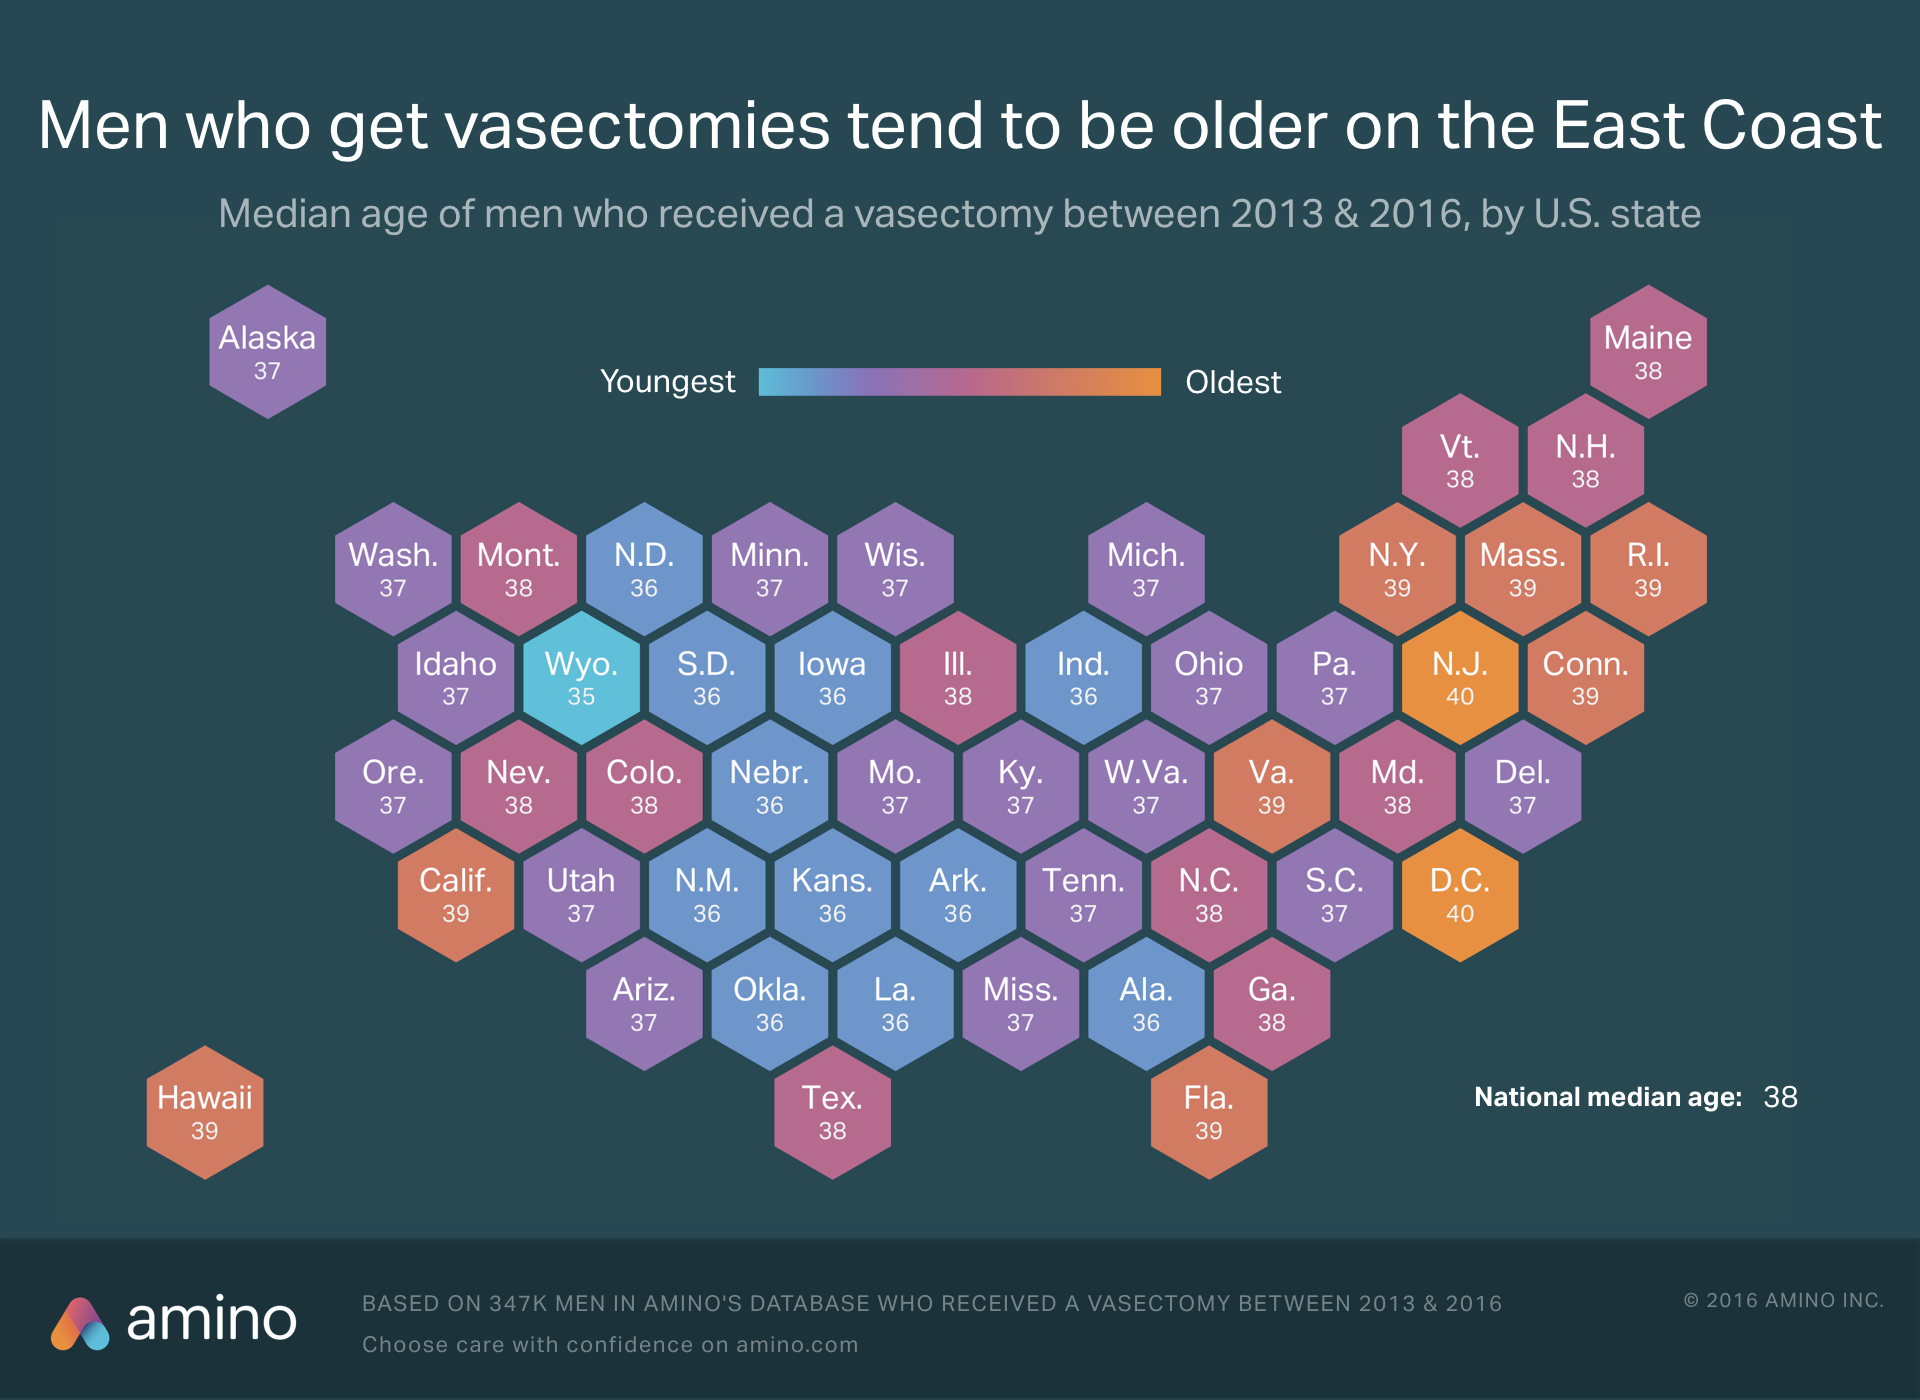 age of men getting vasectomies by state